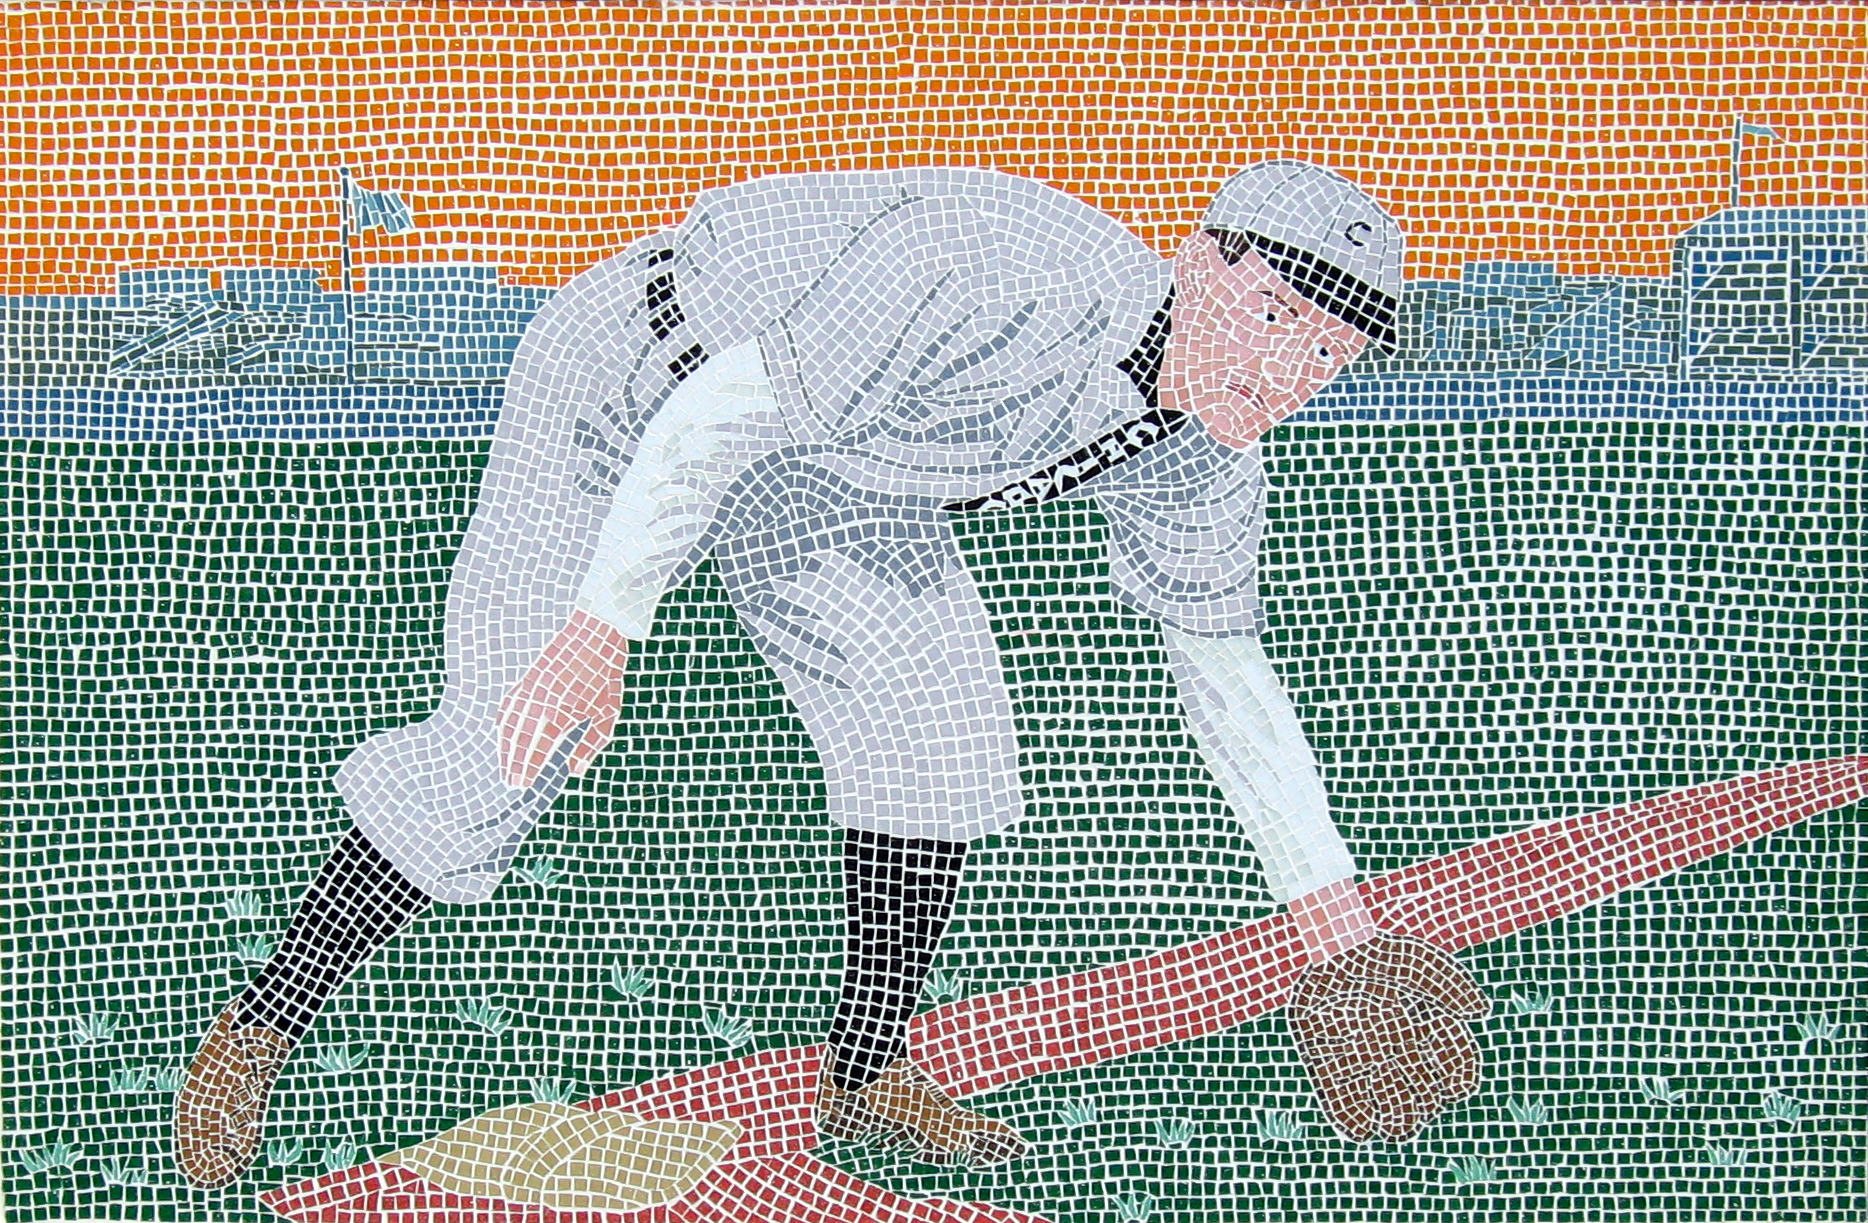 Johnny Evers Chicago Cubs glass mosaic commissioned by LVBB